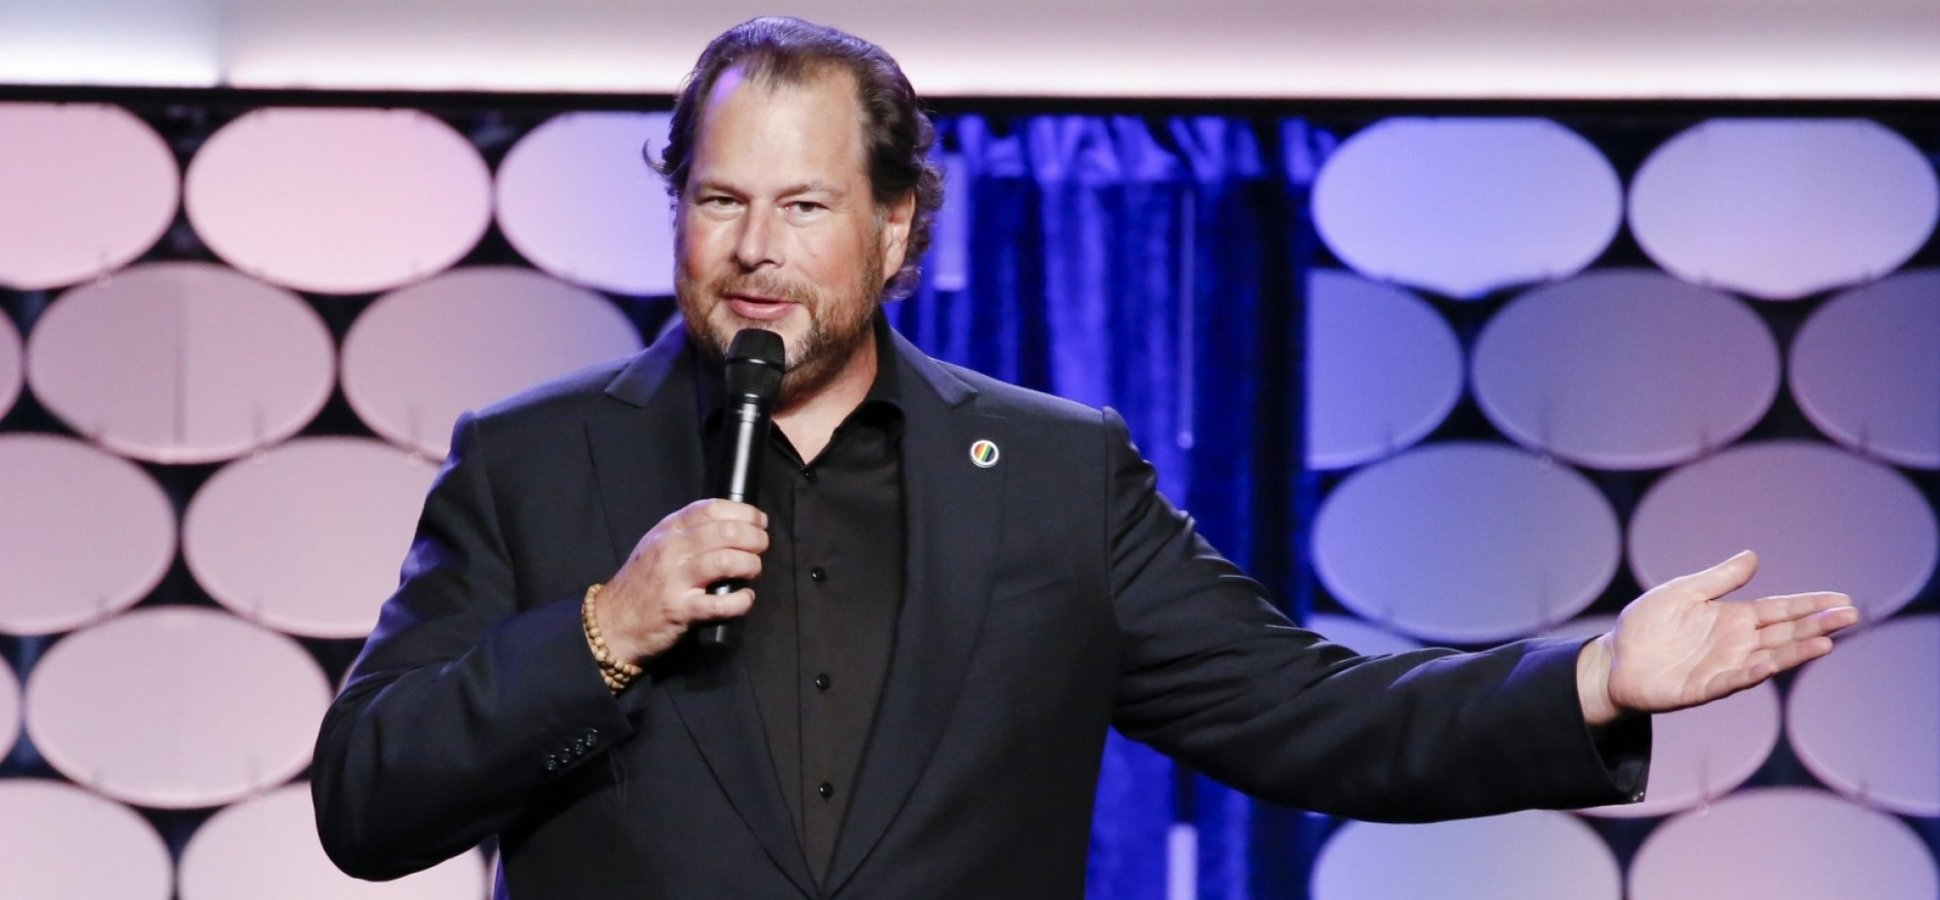 The CEO of Salesforce Found Out His Female Employees Were Paid Less Than Men. His Response Is a Priceless Leadership Lesson